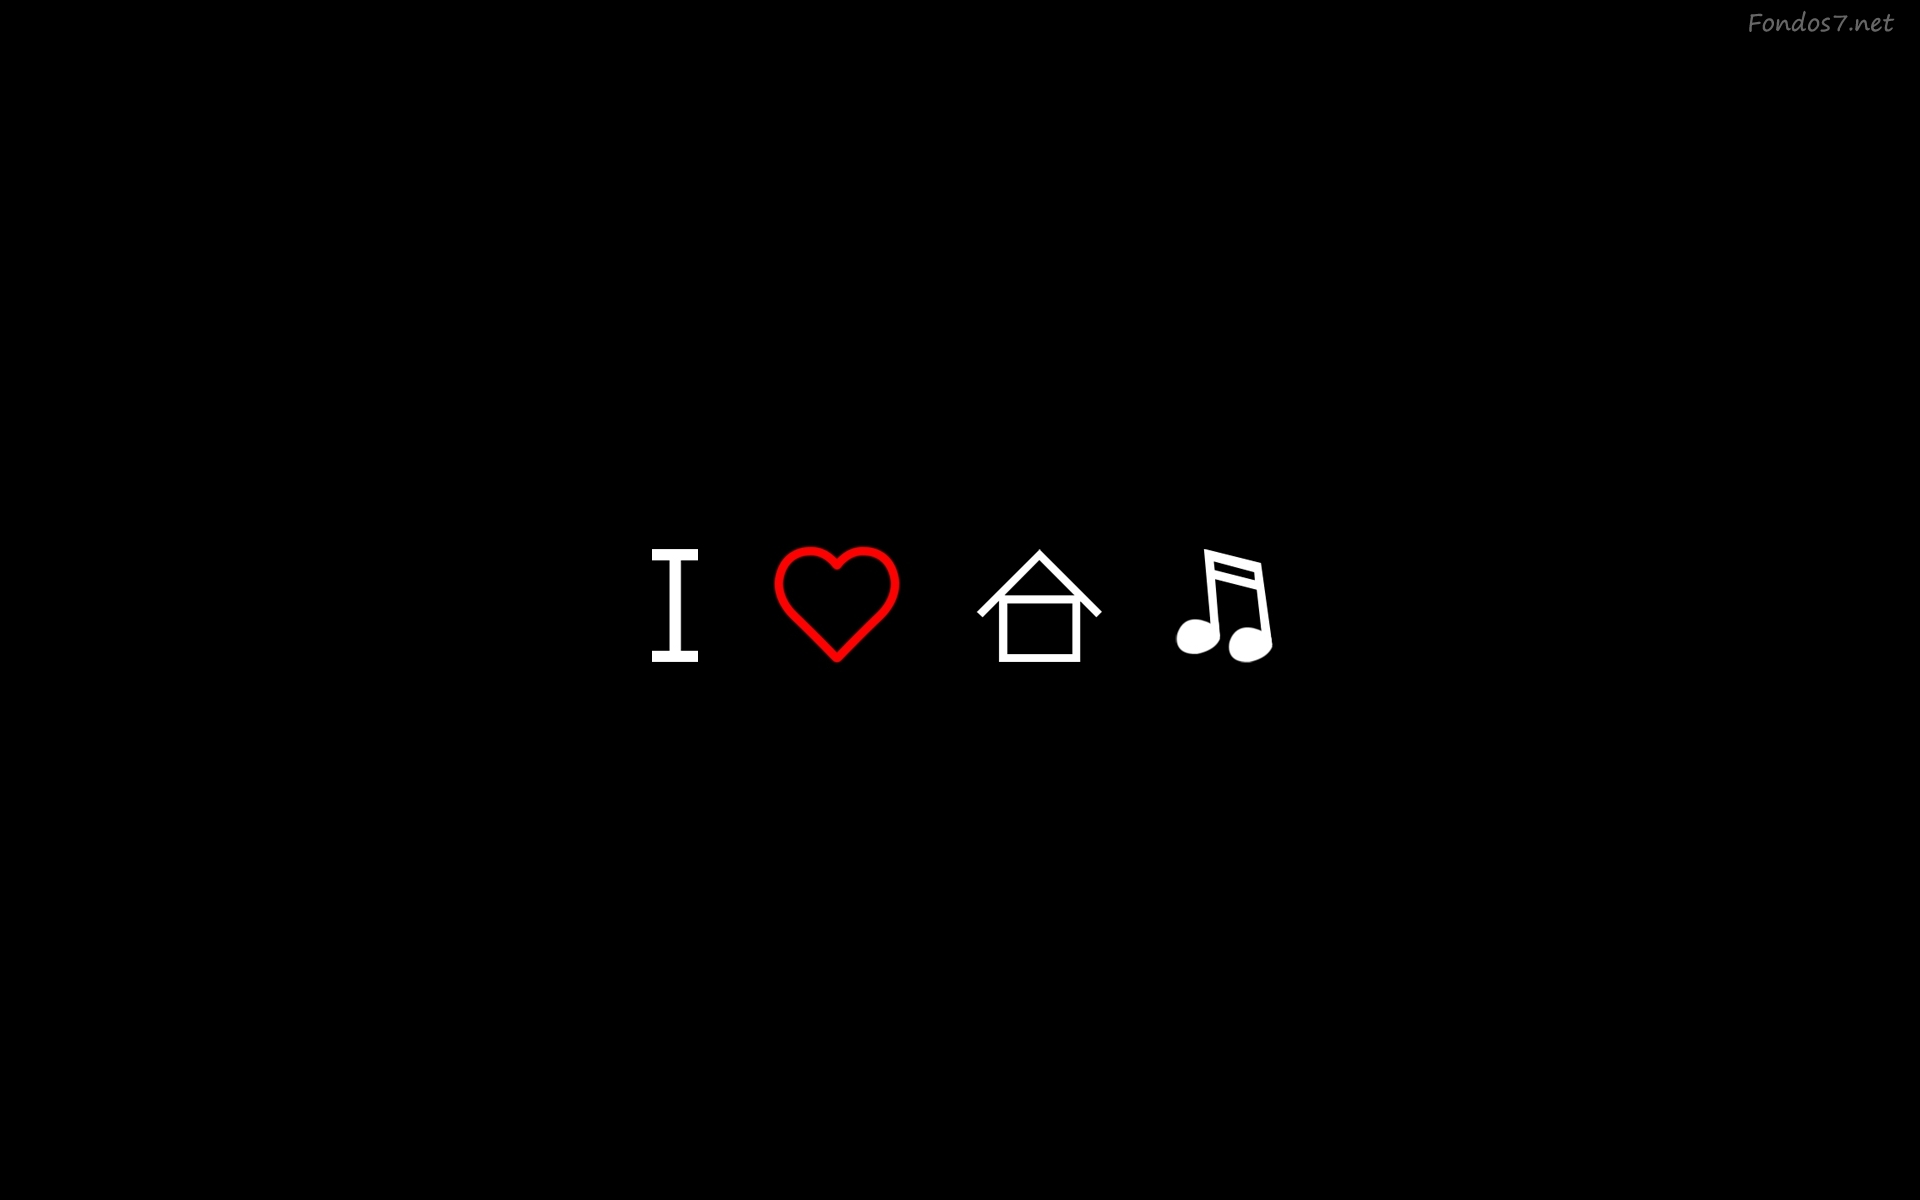 I love house music wallpapers wallpapersafari for Jack house music